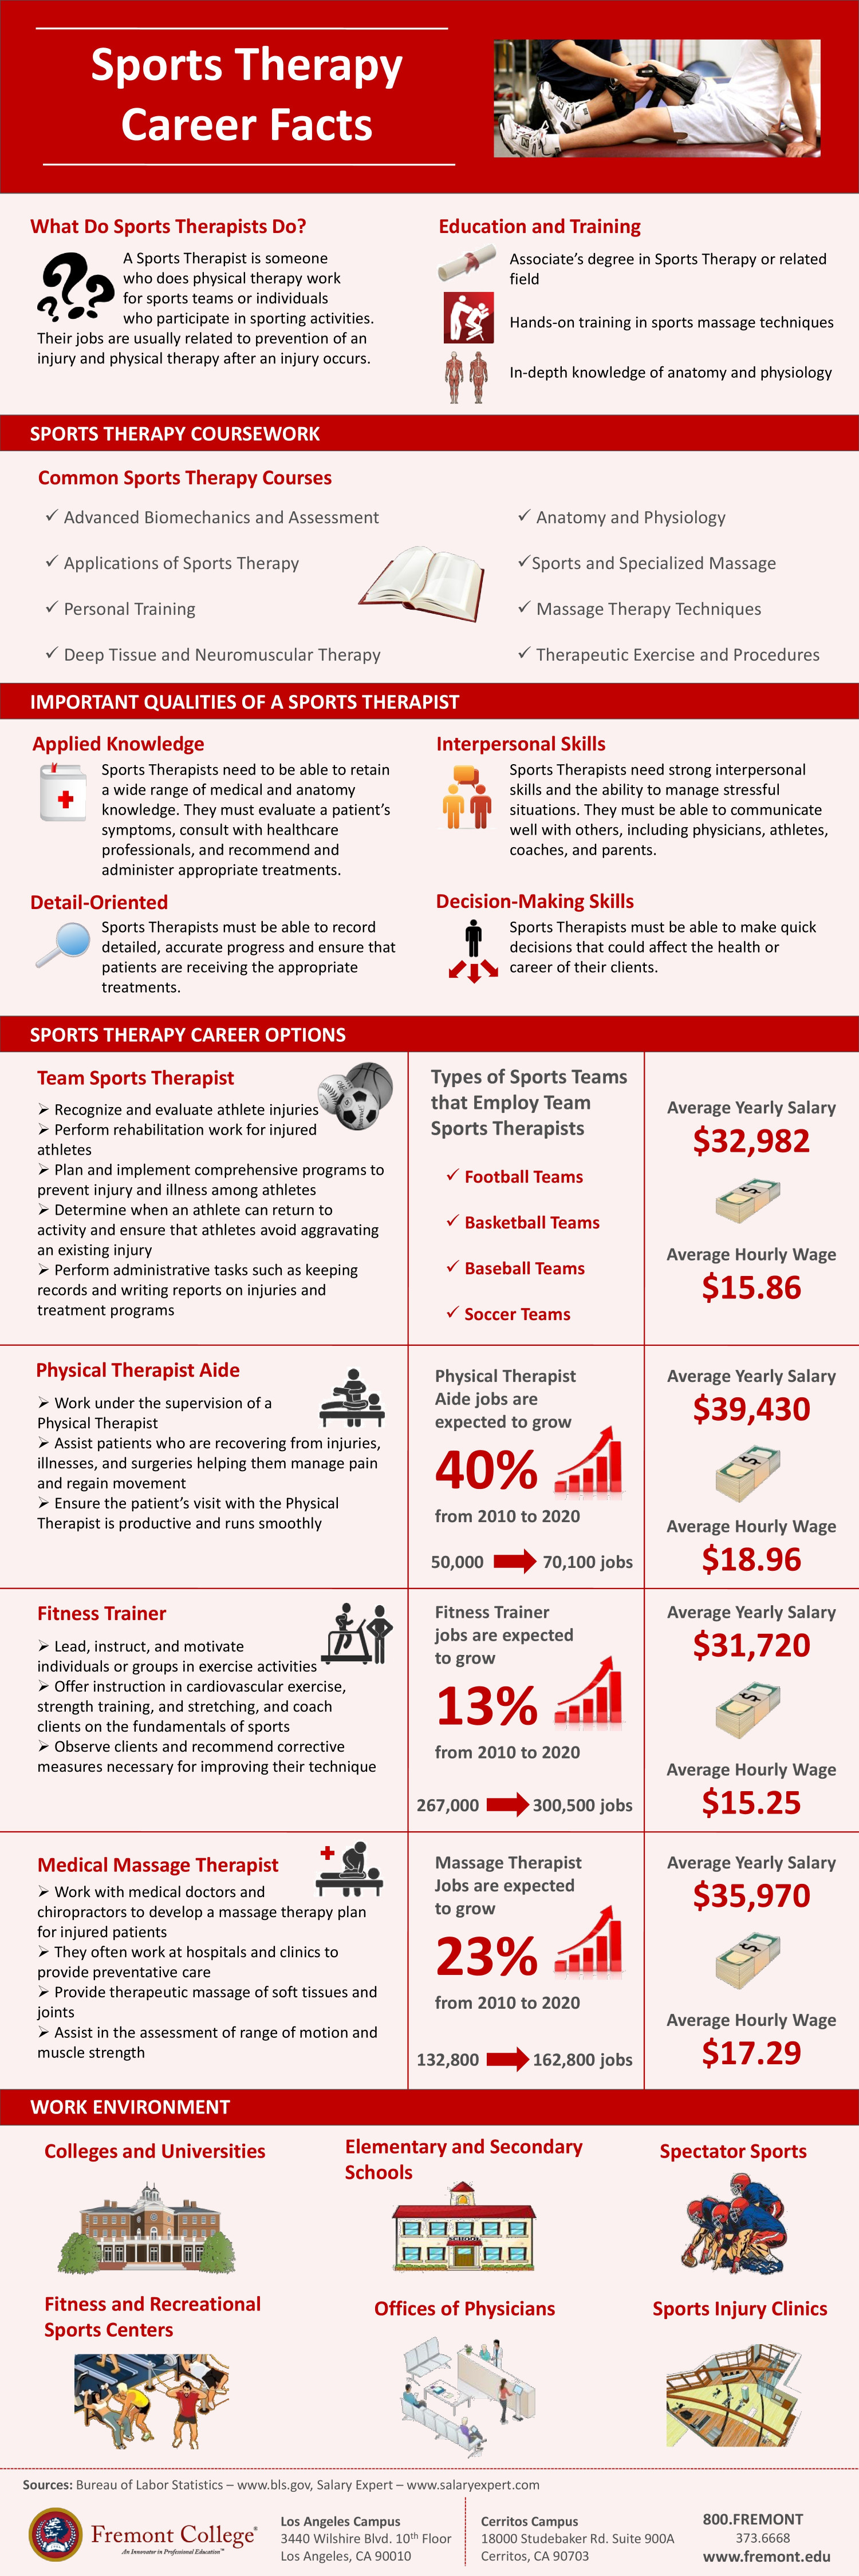 Sports Therapy Career Facts Infographic